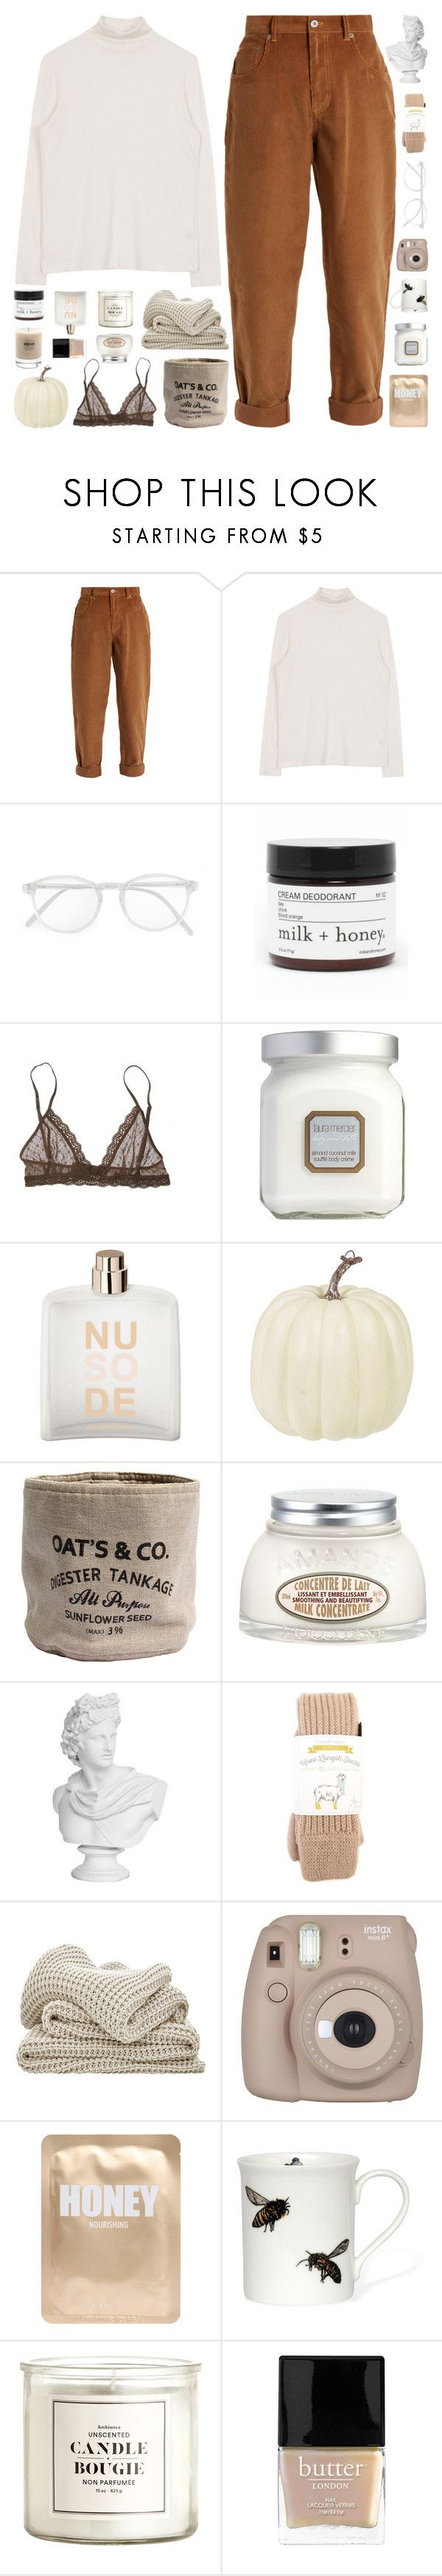 """OLD NEWS TO YOU THEN"" by cappvccino ❤ liked on Polyvore featuring Miu Miu, RetroSuperFuture, Milk + Honey, Eberjey, Laura Mercier, COSTUME NATIONAL, H&M, L'Occitane, Samantha Holmes and Fujifilm"